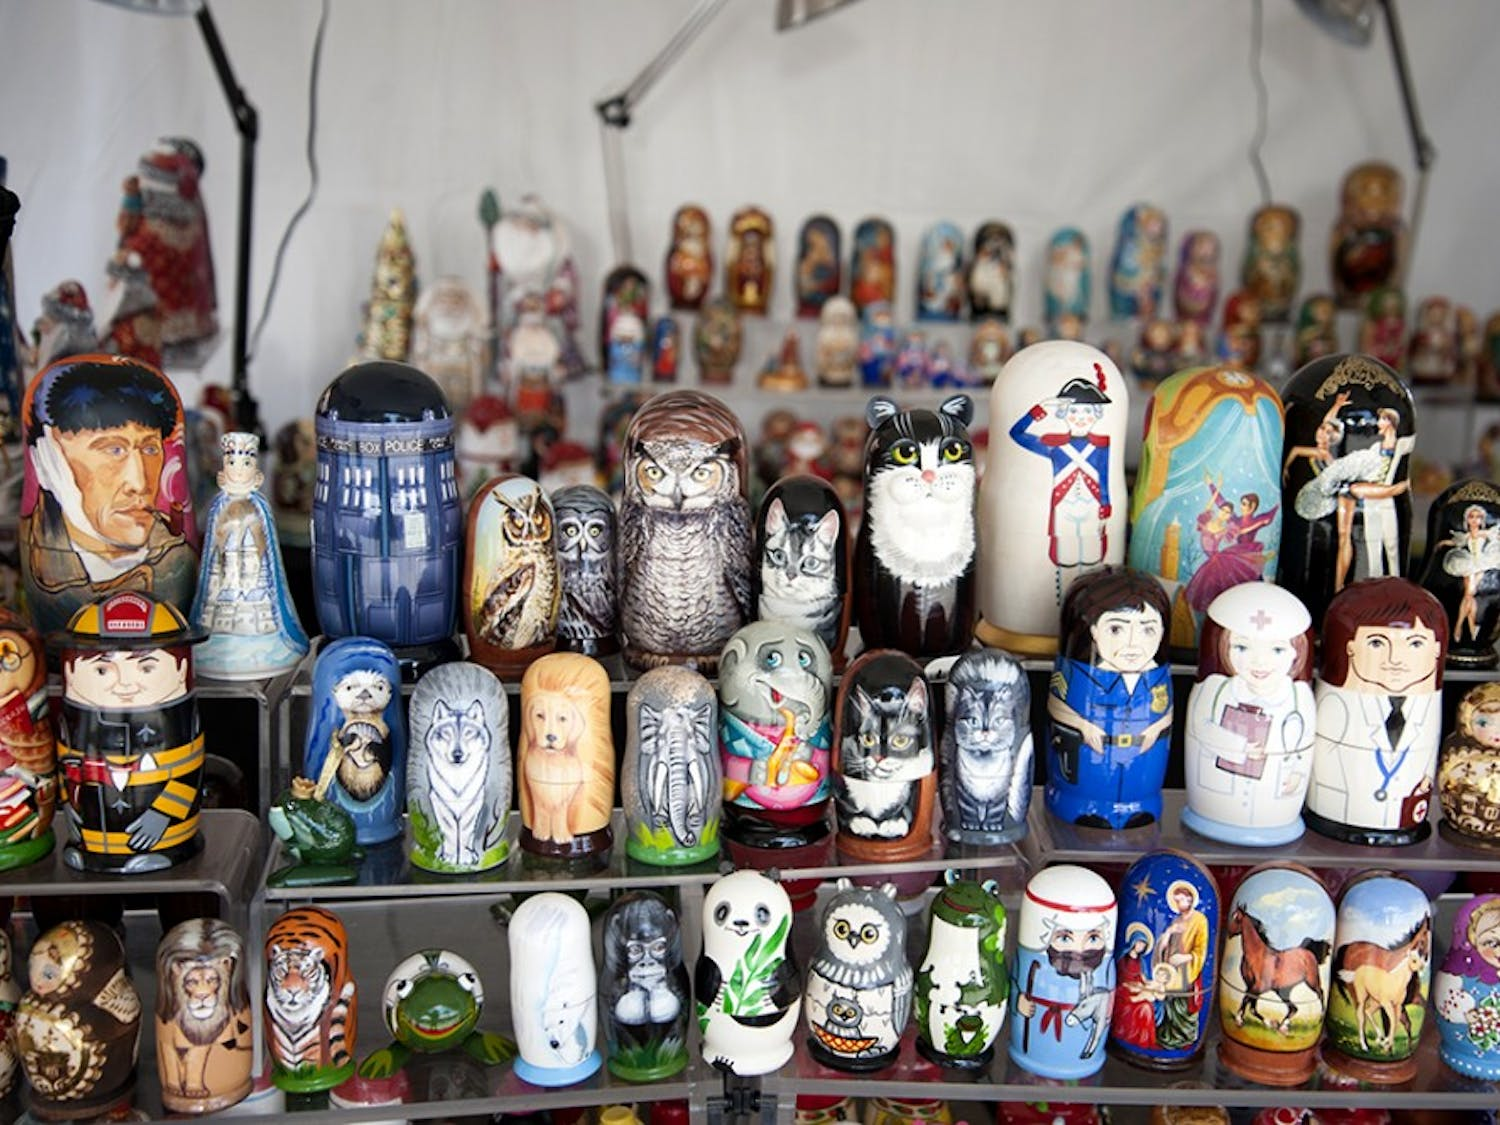 Ceramic souvenirs are displayed at the 30th annual Greek Festival in Columbia in 2016.